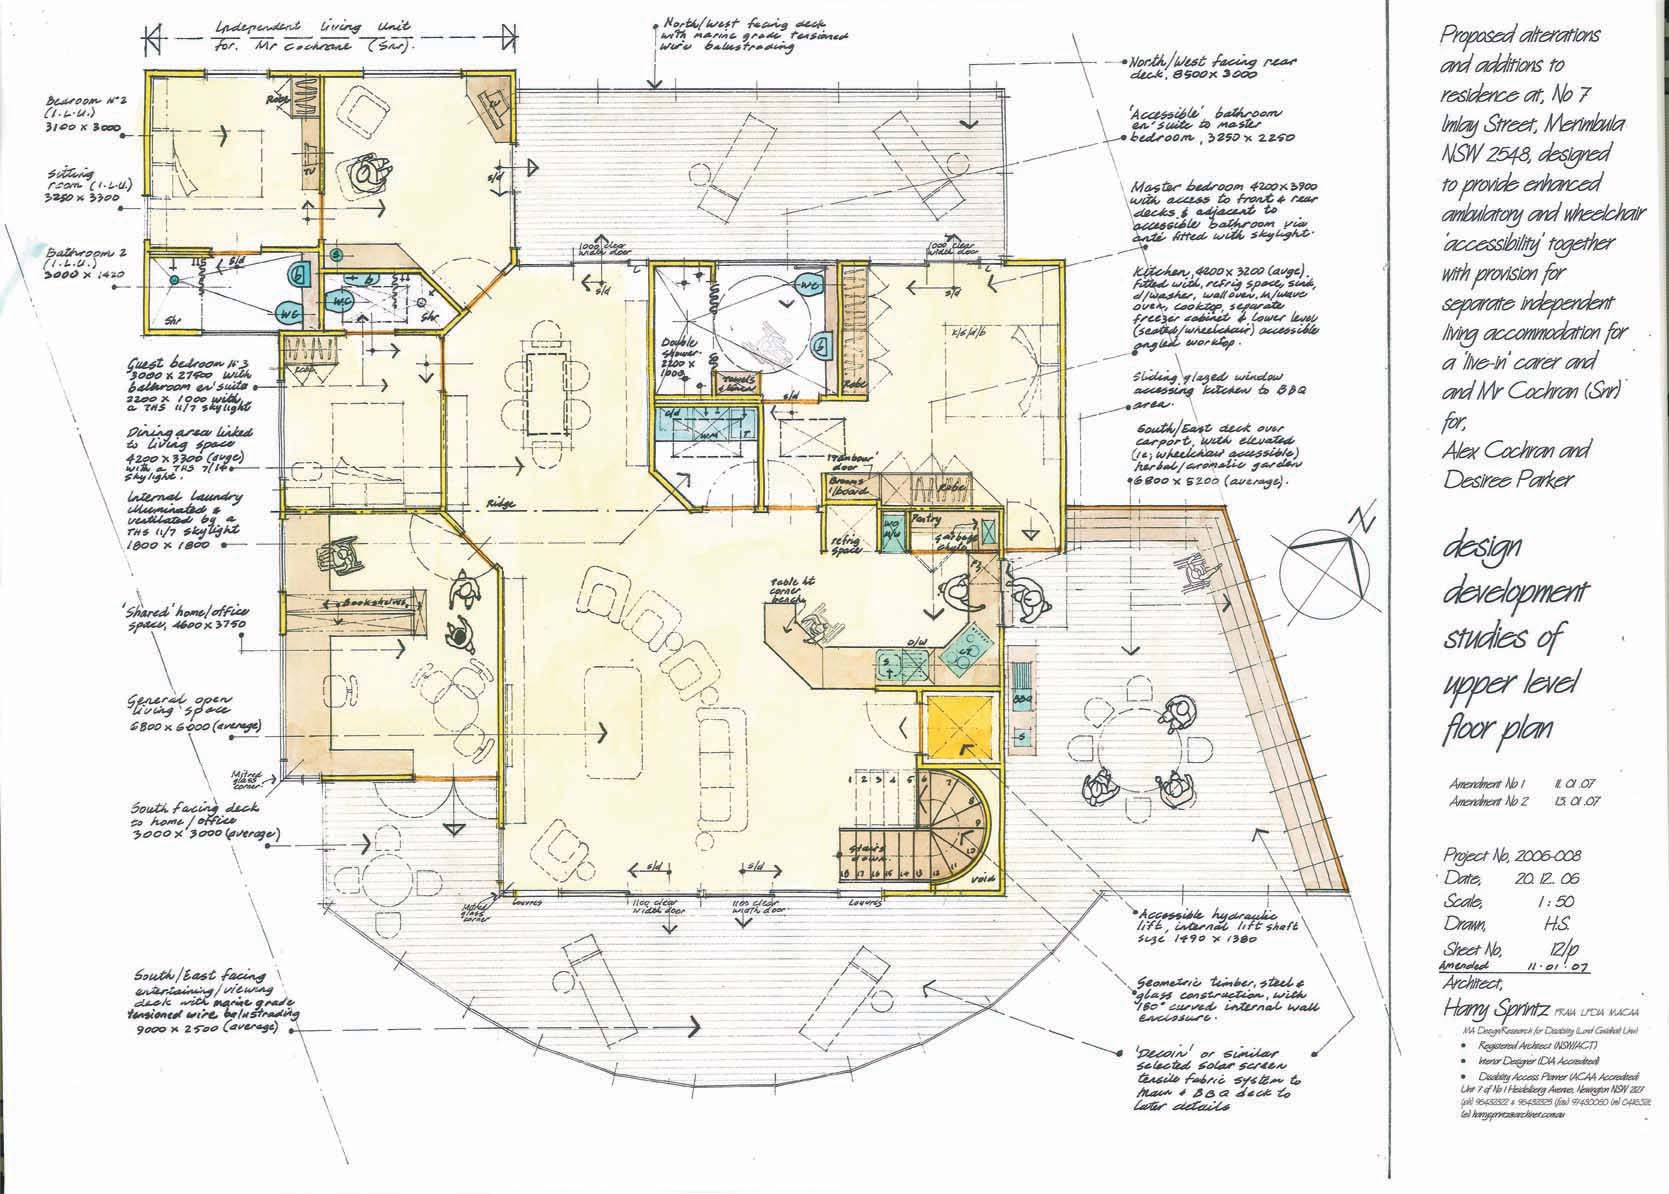 Home renovations for universal accessibility Universal design home plans